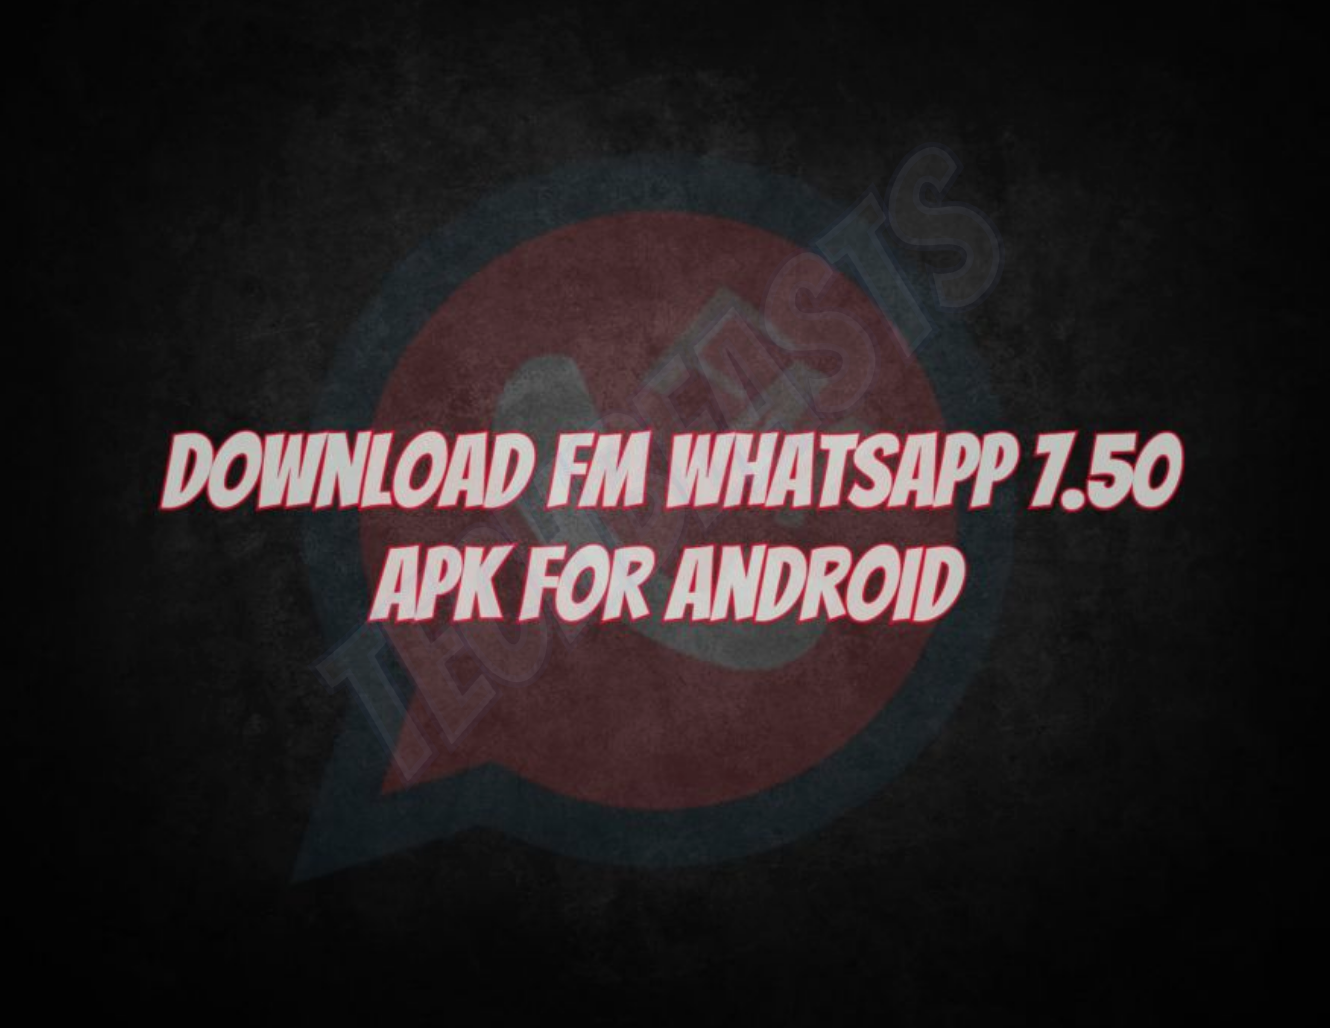 FM WhatsApp APK v7 60 for Android (2018 Version) | TechBeasts